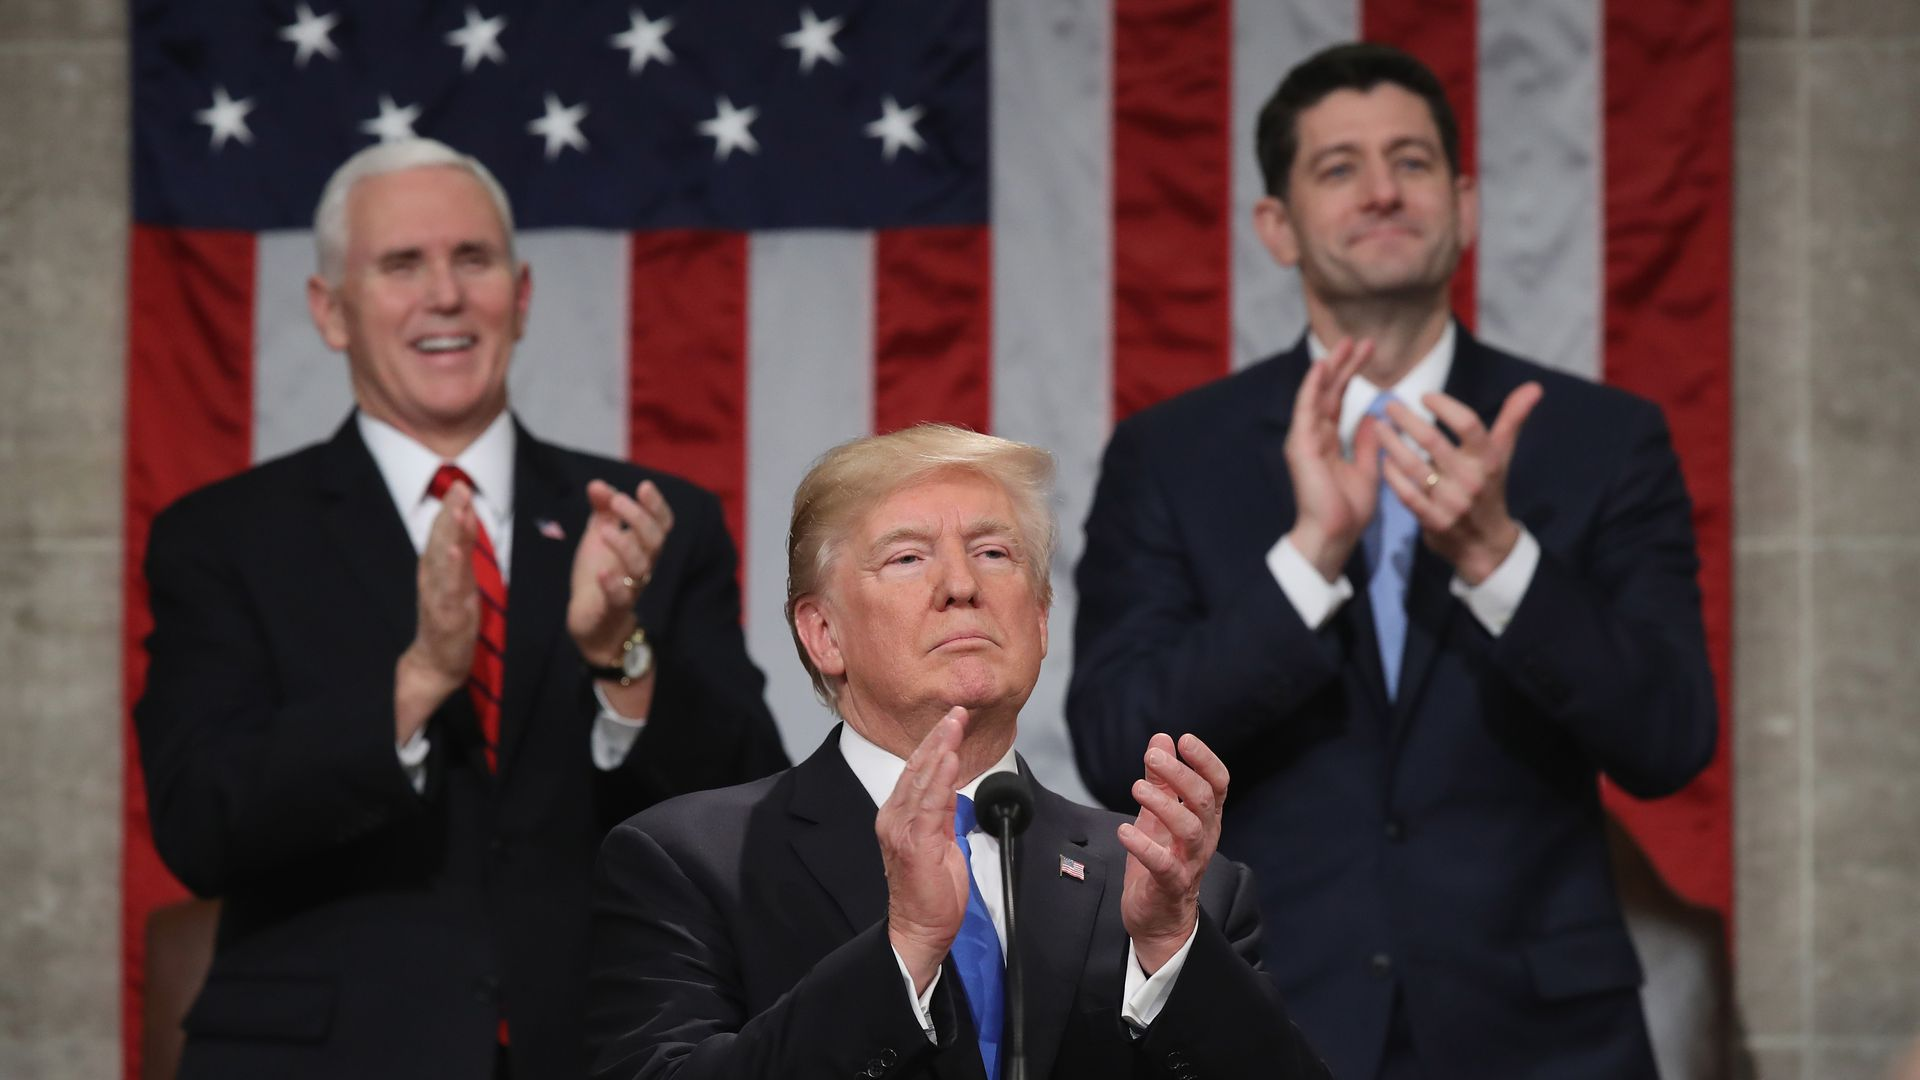 President Trump with Vice President Mike Pence and House Speaker Paul Ryan.